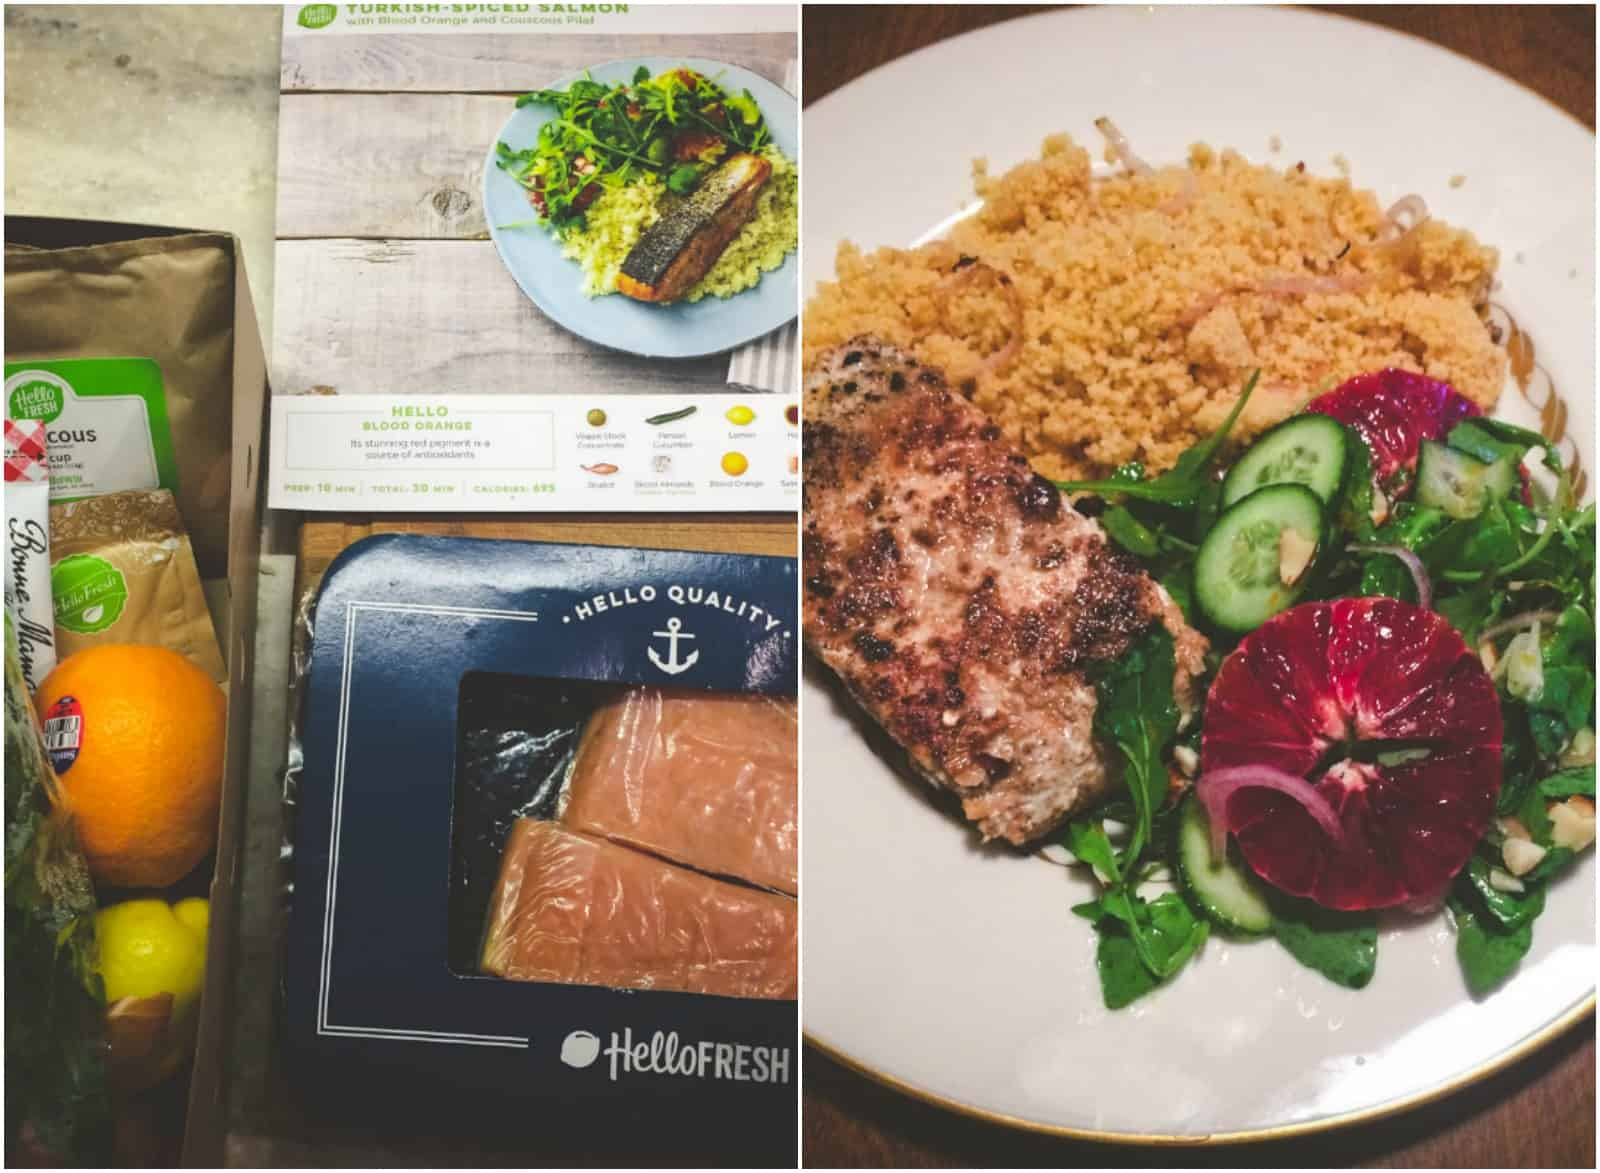 Hellofresh Meal Kit Delivery Service New Amazon